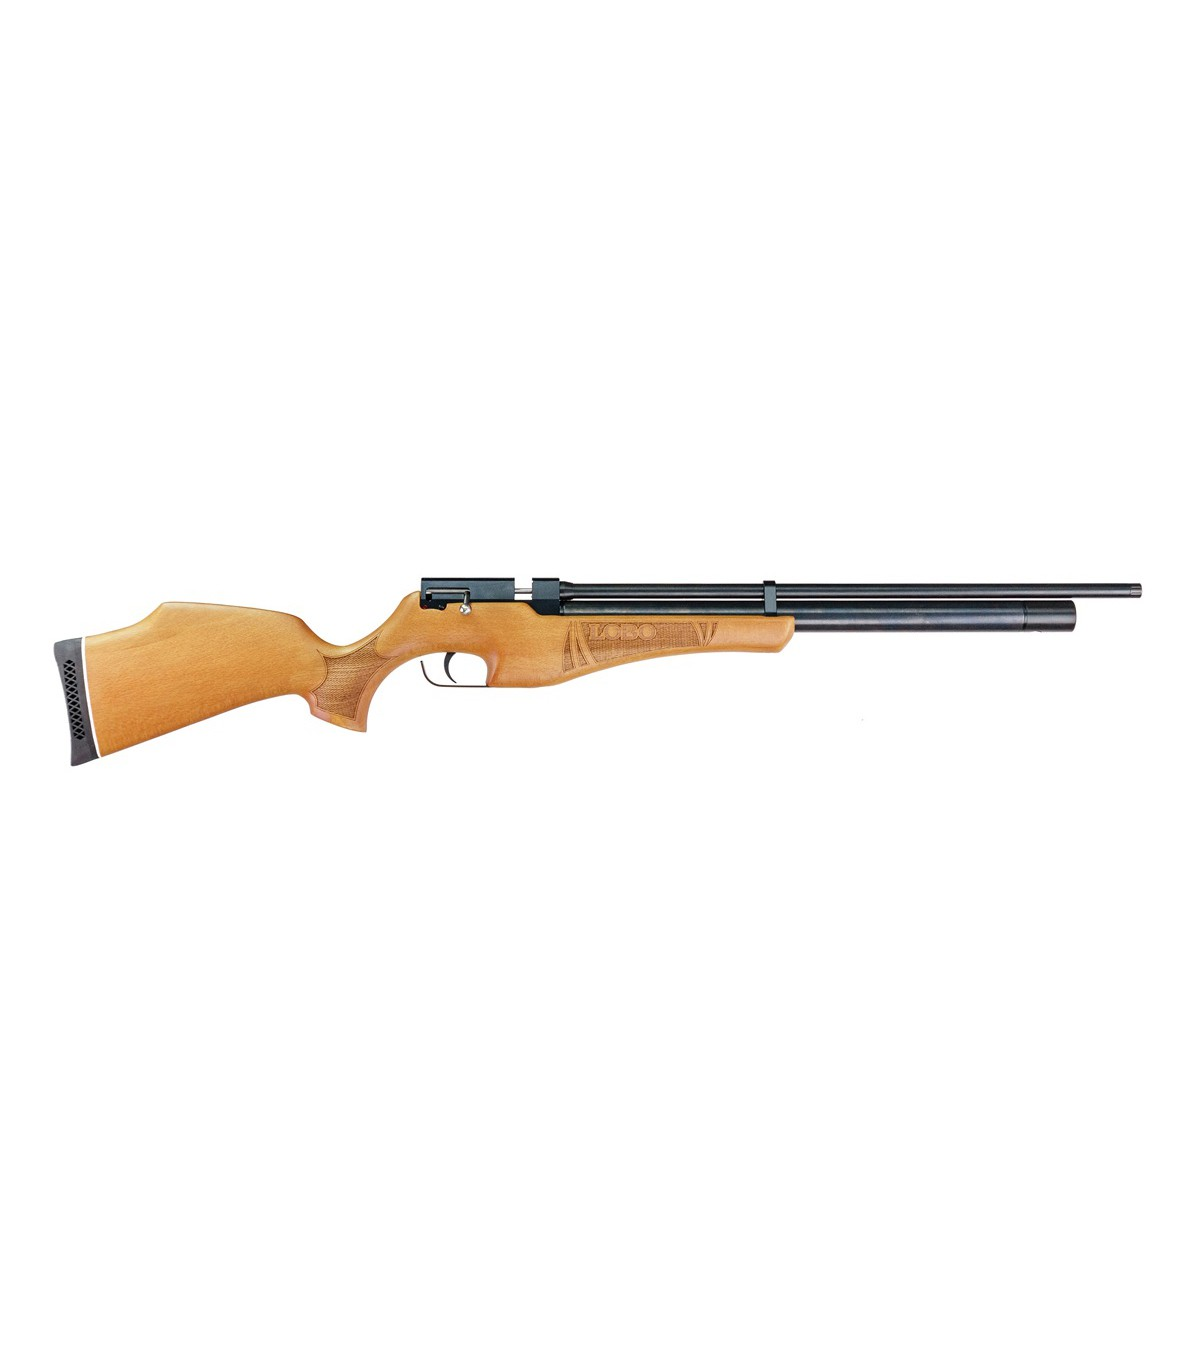 Azor air rifle, a classic design with excellent performance